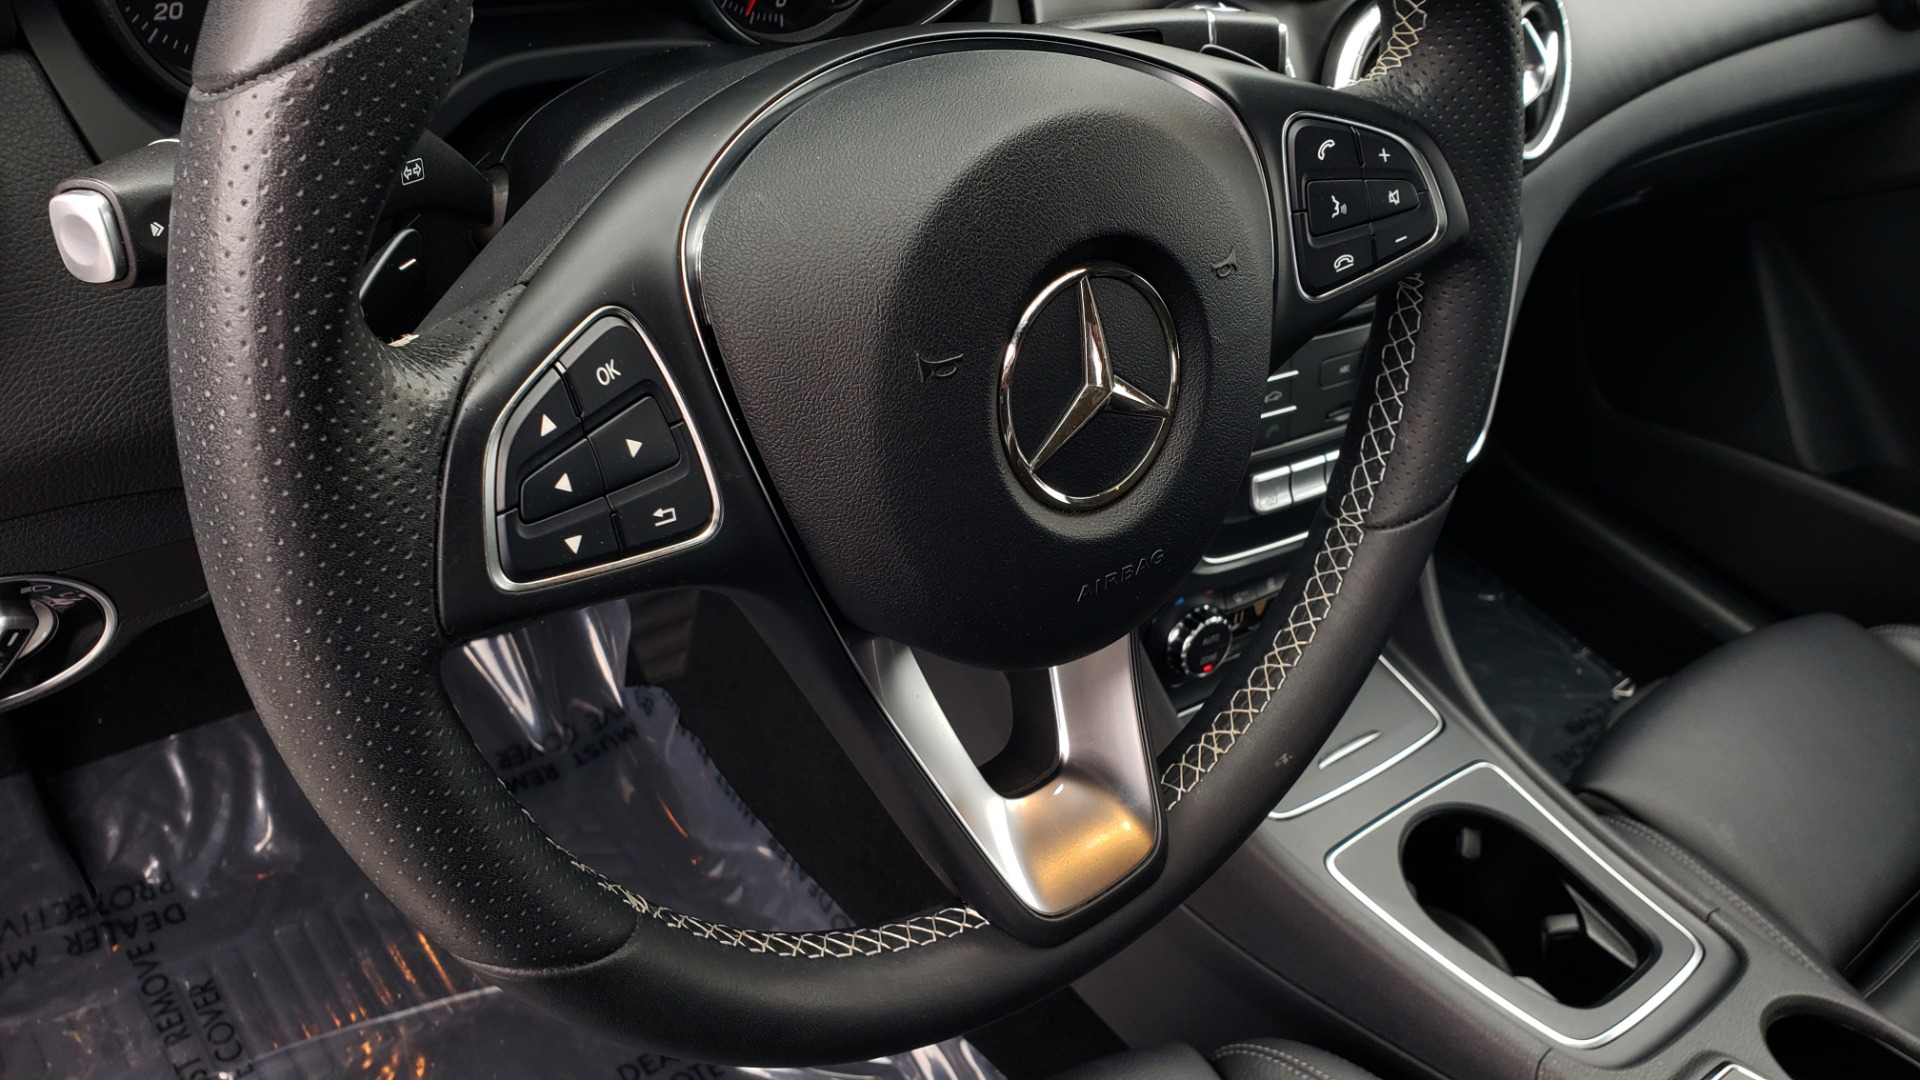 Used 2018 Mercedes-Benz CLA 250 PREMIUM / NAV / PANO-ROOF / APPLE CARPLAY / REARVIEW for sale $23,995 at Formula Imports in Charlotte NC 28227 37